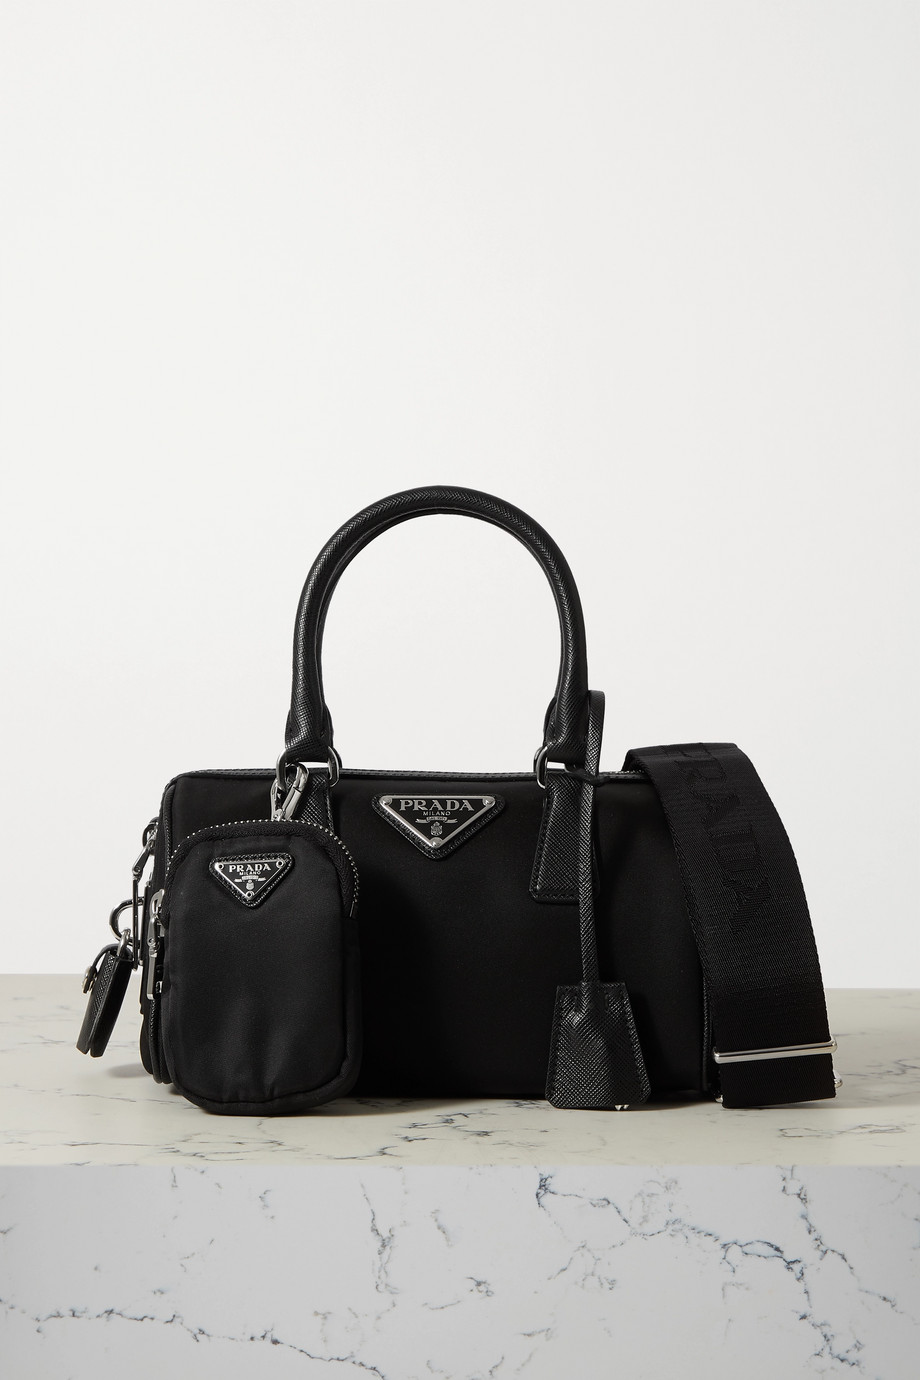 Prada Tessuto mini textured leather-trimmed nylon tote